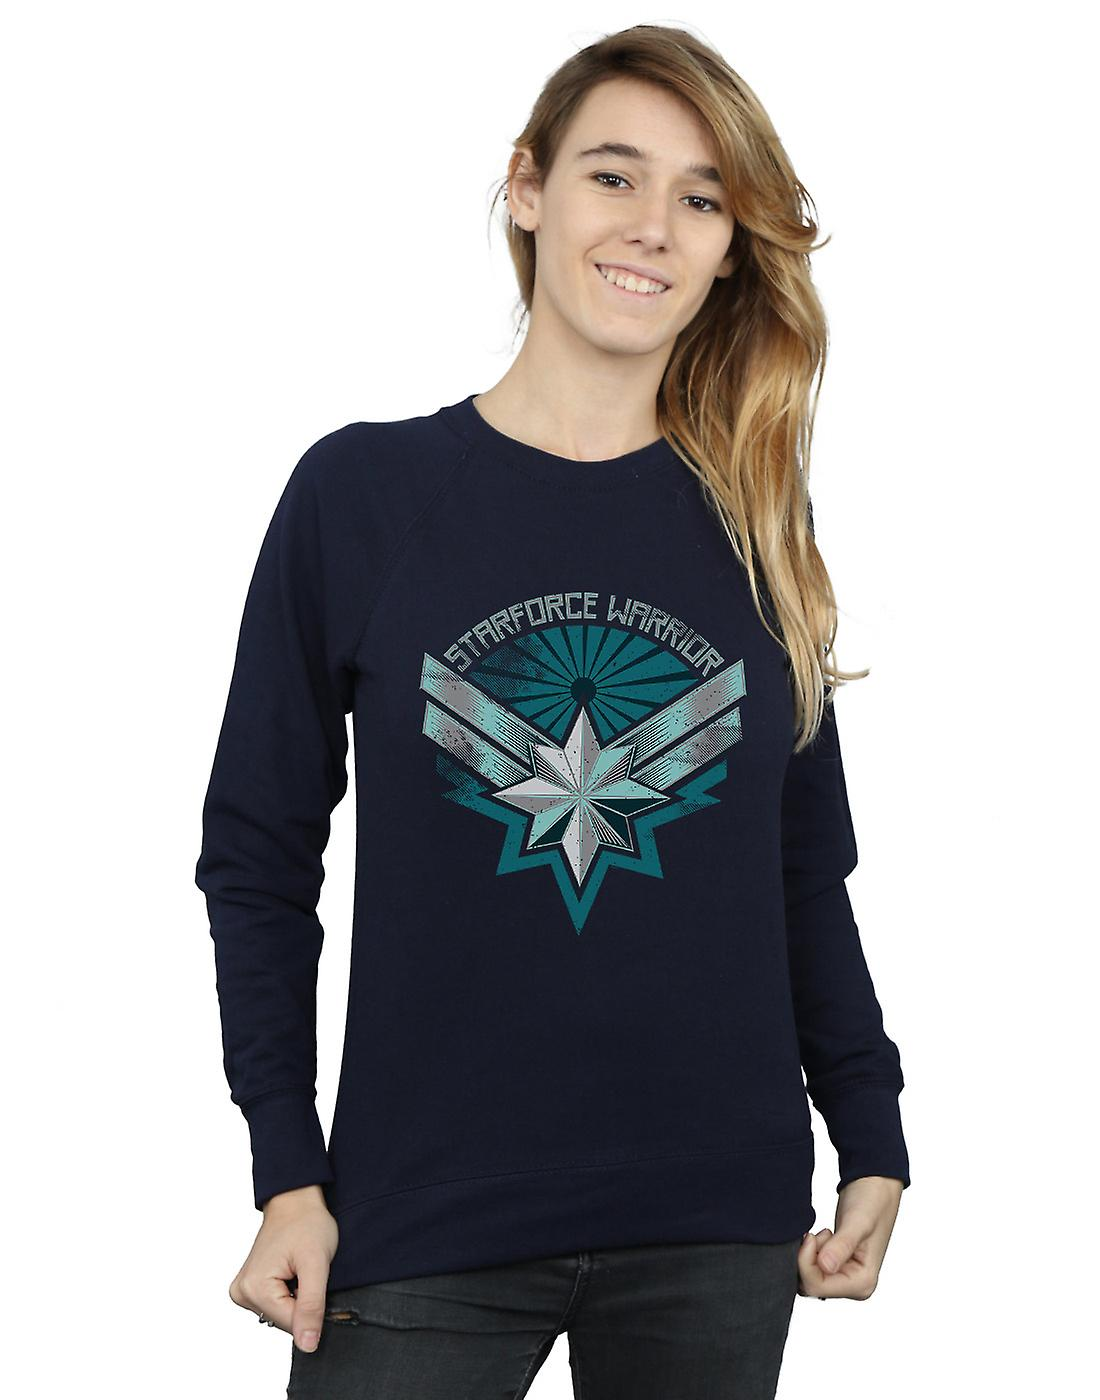 Marvel Women's Captain Marvel Starforce Warrior Sweatshirt